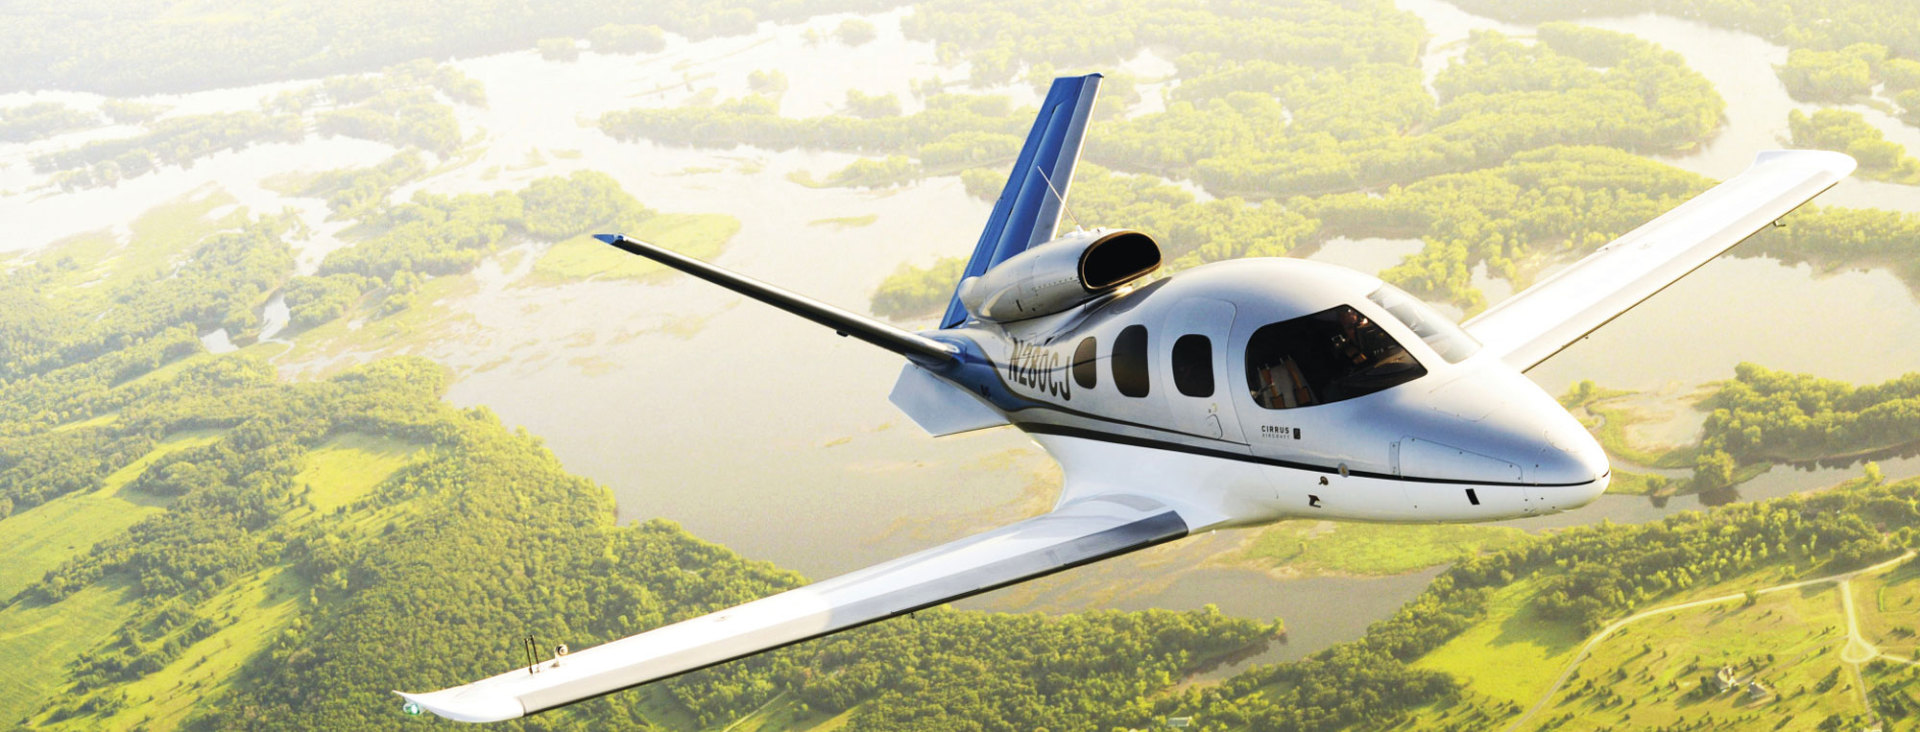 Cirrus Vision SF50 represents the next step for general aviation market, allowing numerous private pilots to gain experience and enjoy flying in the pressurized cabin.